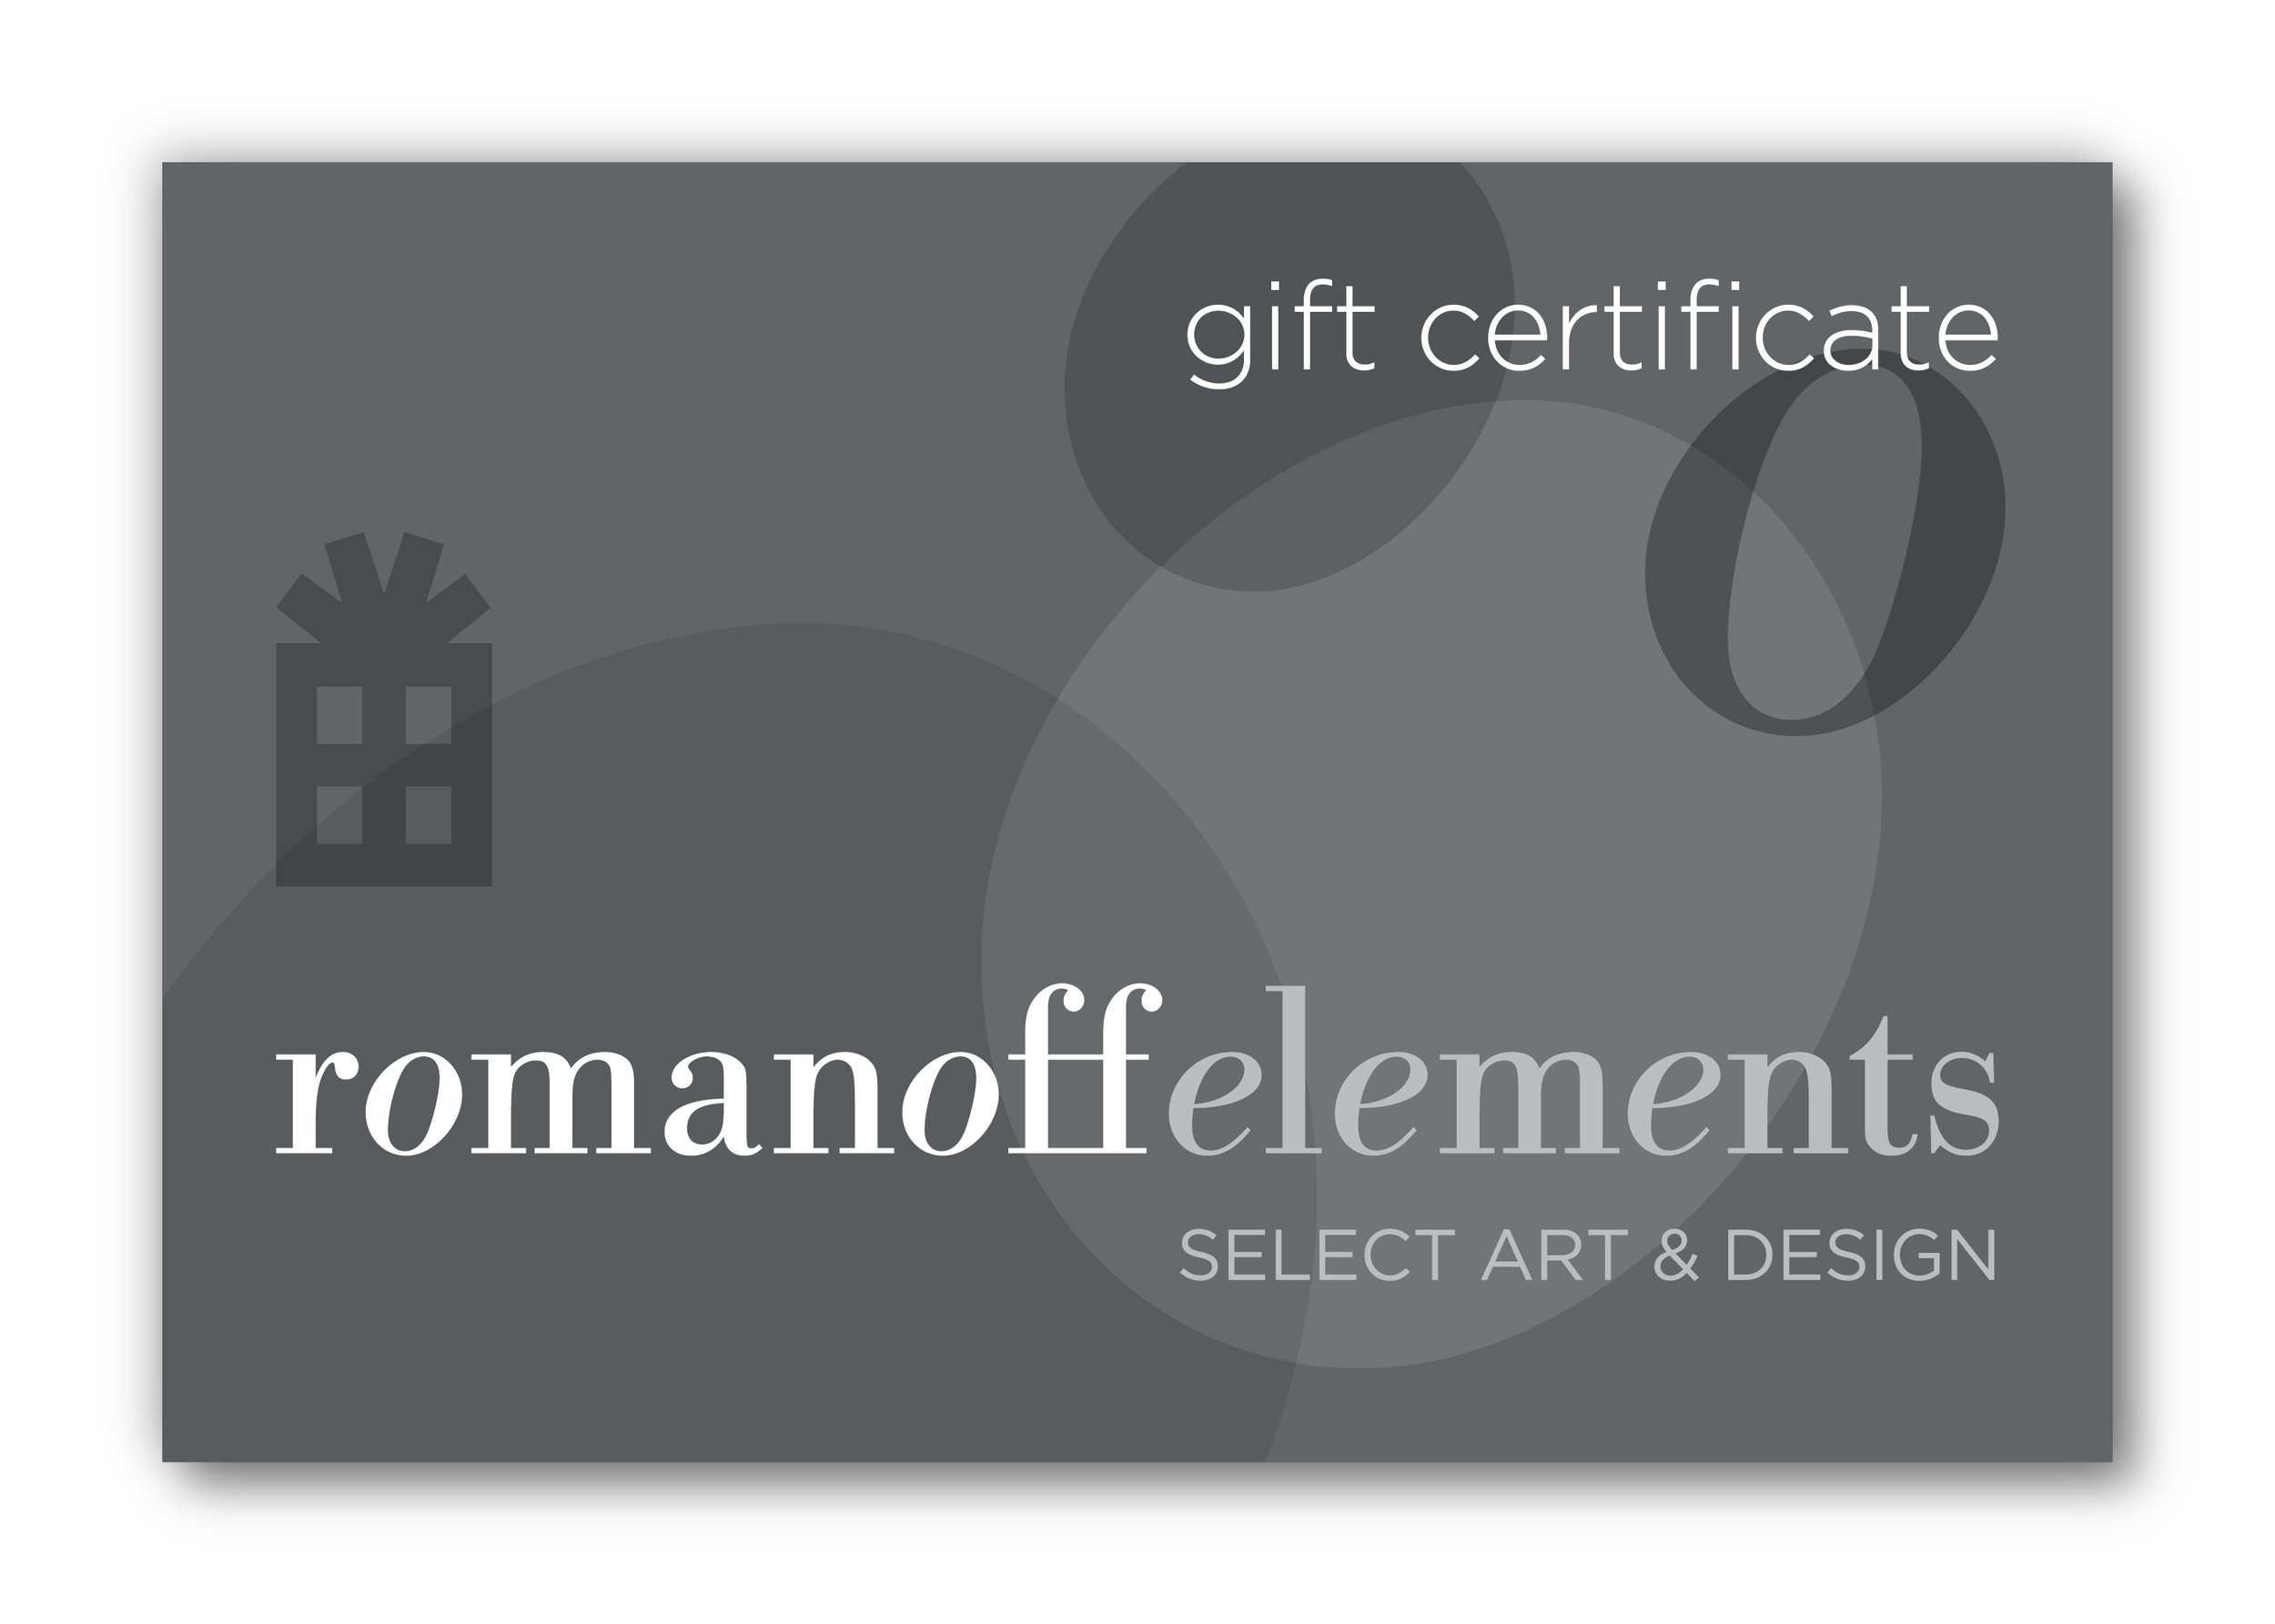 RE_GiftCertificate-01